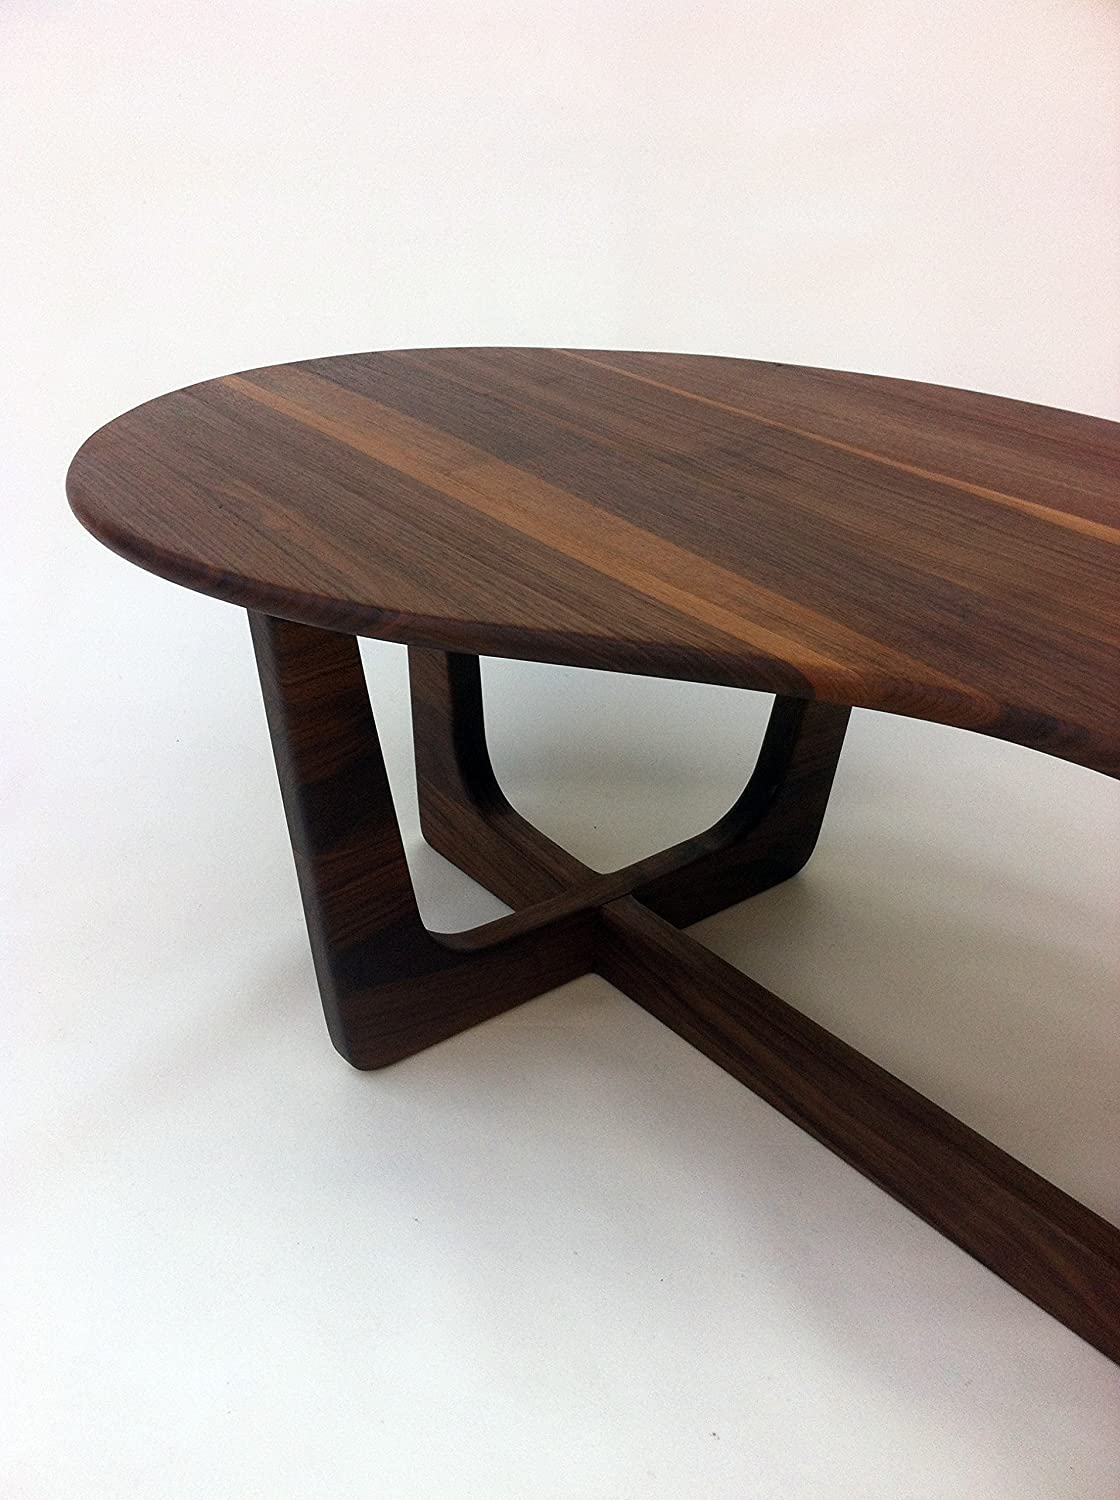 Biomorphic Coffee Table Amazoncom 60 Kidney Bean Cocktail Table Mid Century Modern